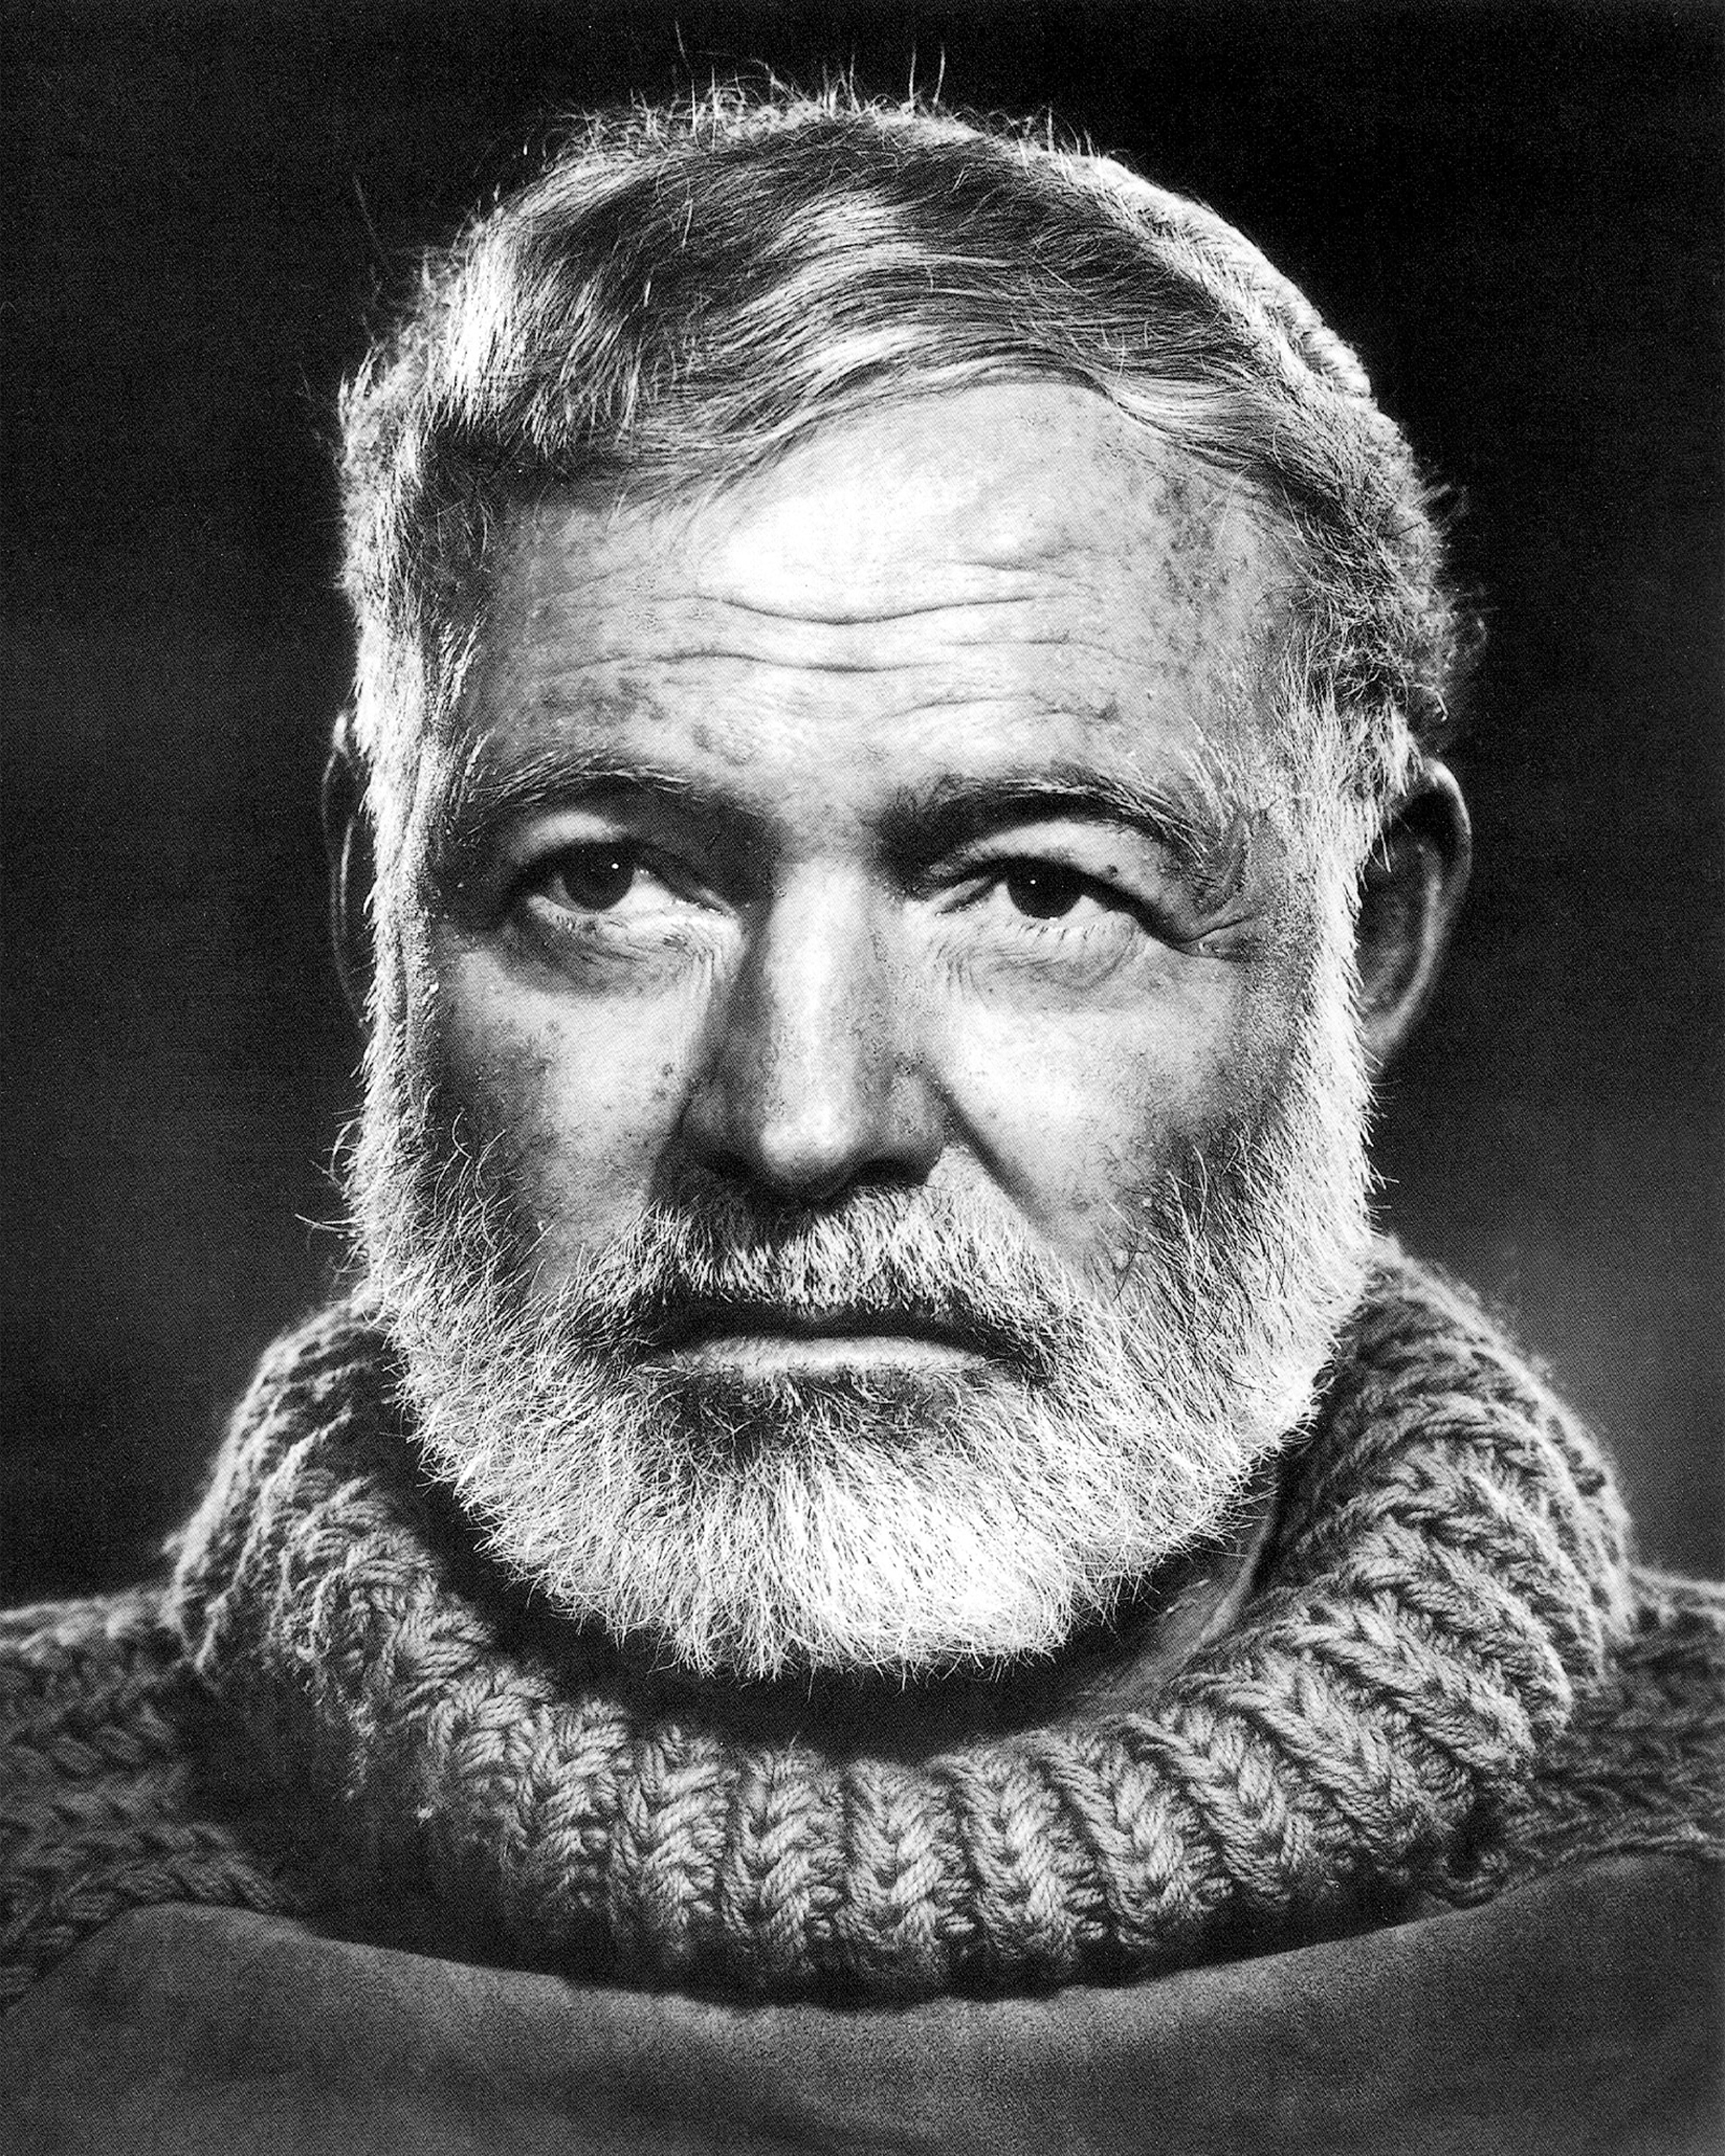 "KRT ENTERTAINMENT STORY SLUGGED: HEMINGWAY KRT PHOTOGRAPH BY YOUSEF KARSH COURTESY OF THE JOHN F. KENNEDY LIBRARY (KRT8-July 19) Photographer Yousef Karsh took this famous portrait of Ernest Hemingway in 1957. It is found in the exhibit, ""Picturing Hemingway: A Writer in His Times,"" on view at the National Portrait Gallery in Washington, D.C., through November 7. (KRT) PL KD AP (B&W ONLY) 1999 (Vert) (jak) (Additional photos available on KRT Direct, KRT/PressLink or upon request)"